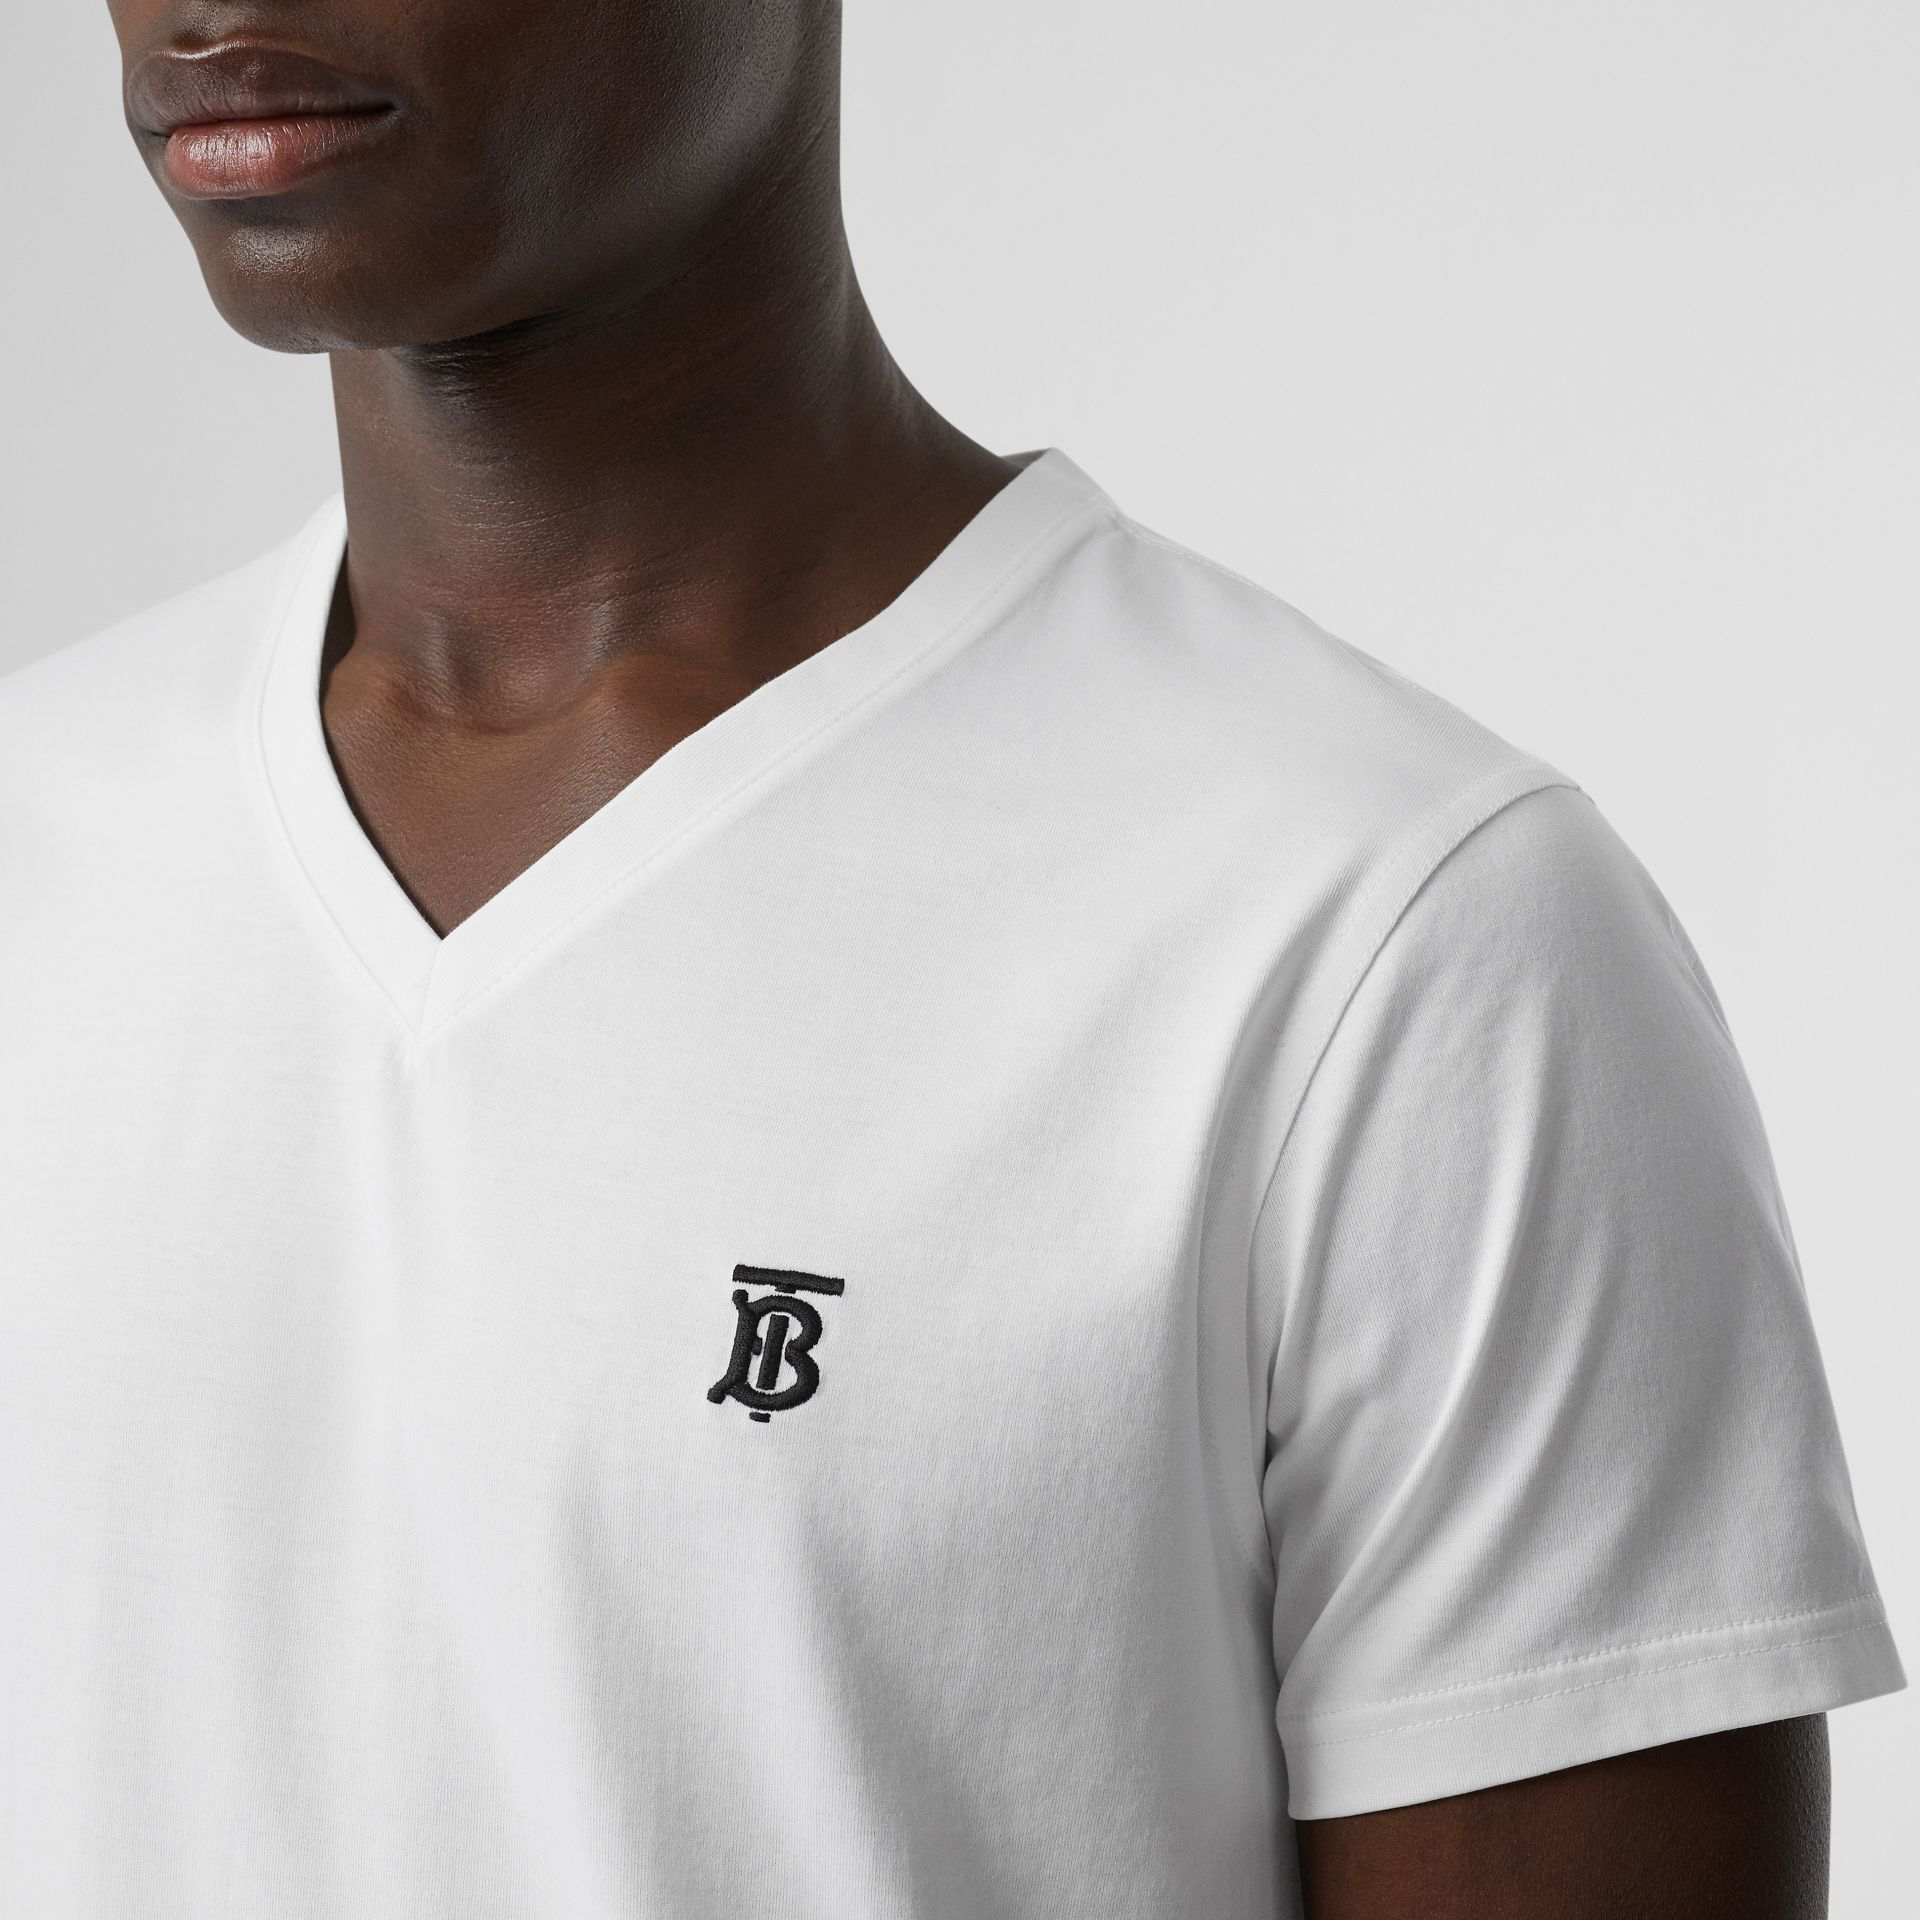 Monogram Motif Cotton V-neck T-shirt in White - Men | Burberry United Kingdom - gallery image 1